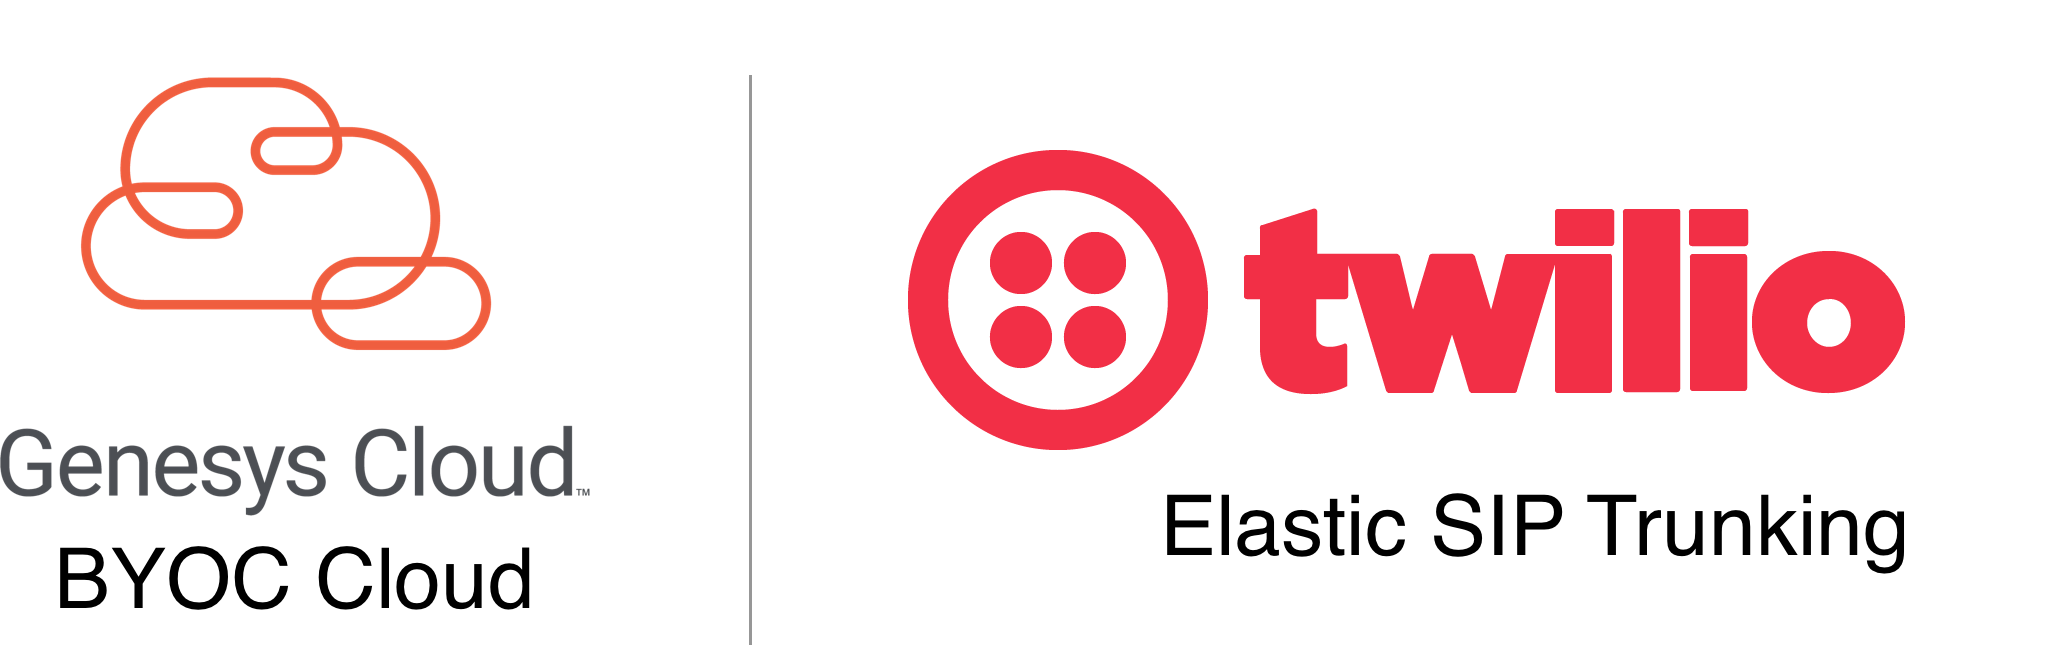 Twilio Elastic SIP Trunking Delivers Global PSTN Access for Genesys Cloud - Twilio